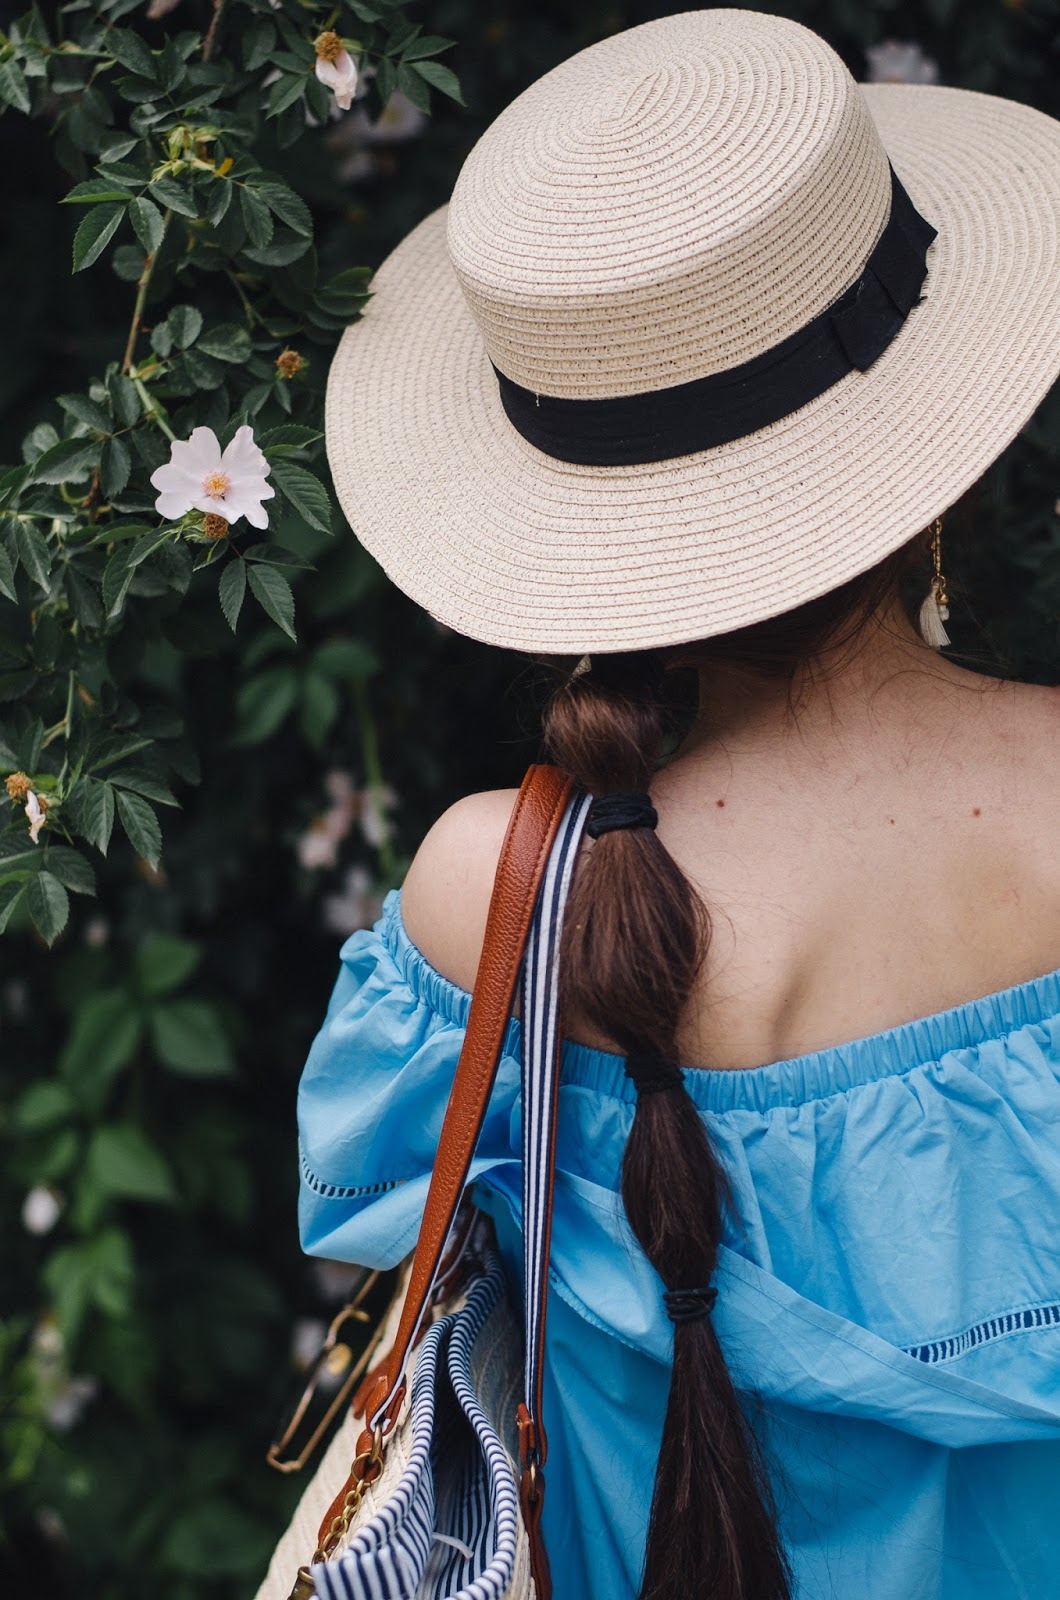 fashion blogger diyrasnotes diyora beta oversized dress offshouldersdress blue straw hat straw bag shopper bag mules white